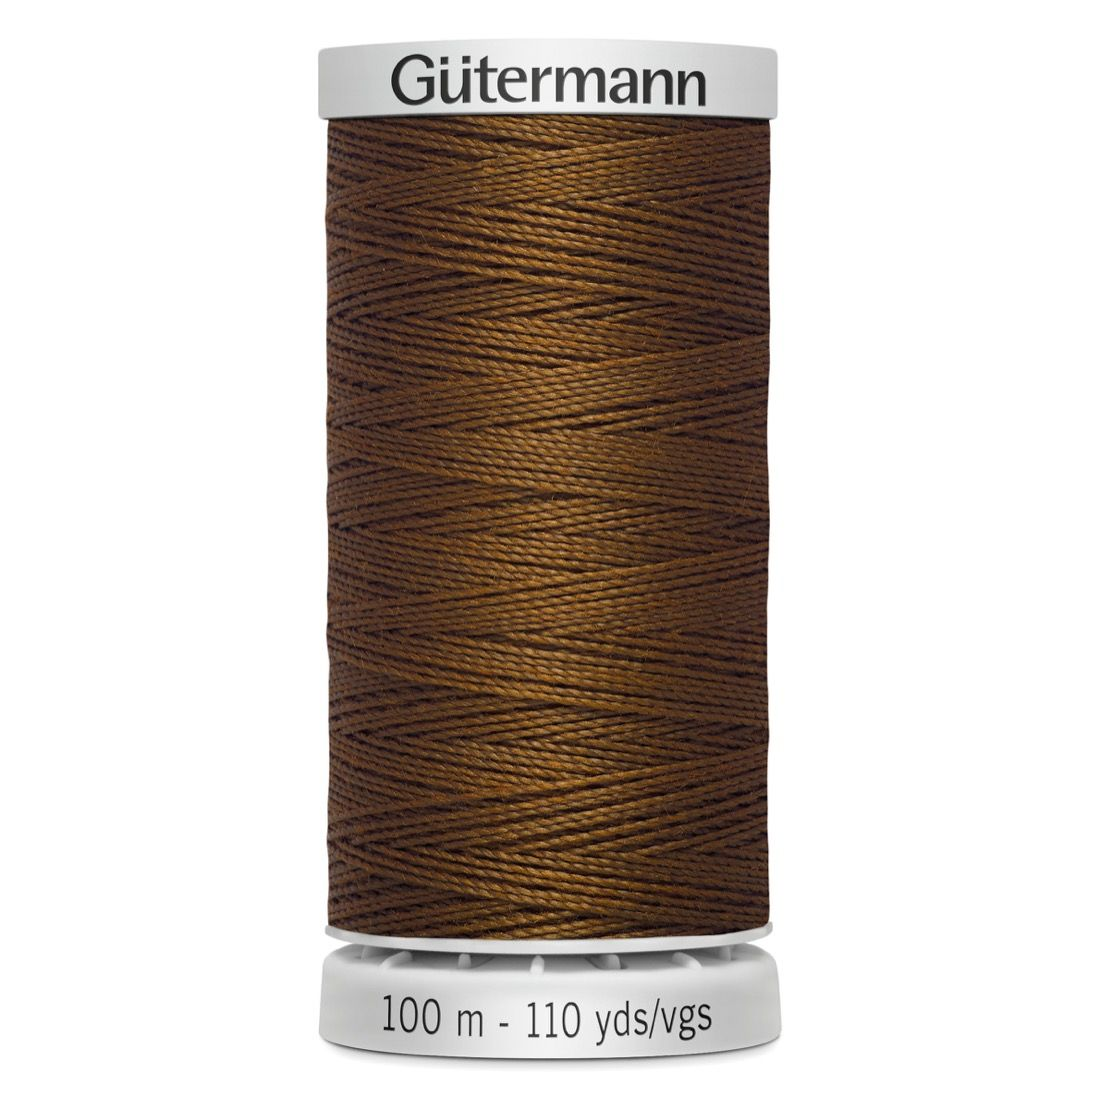 Gutermann Extra Strong Upholstery Thread - 100m - 650